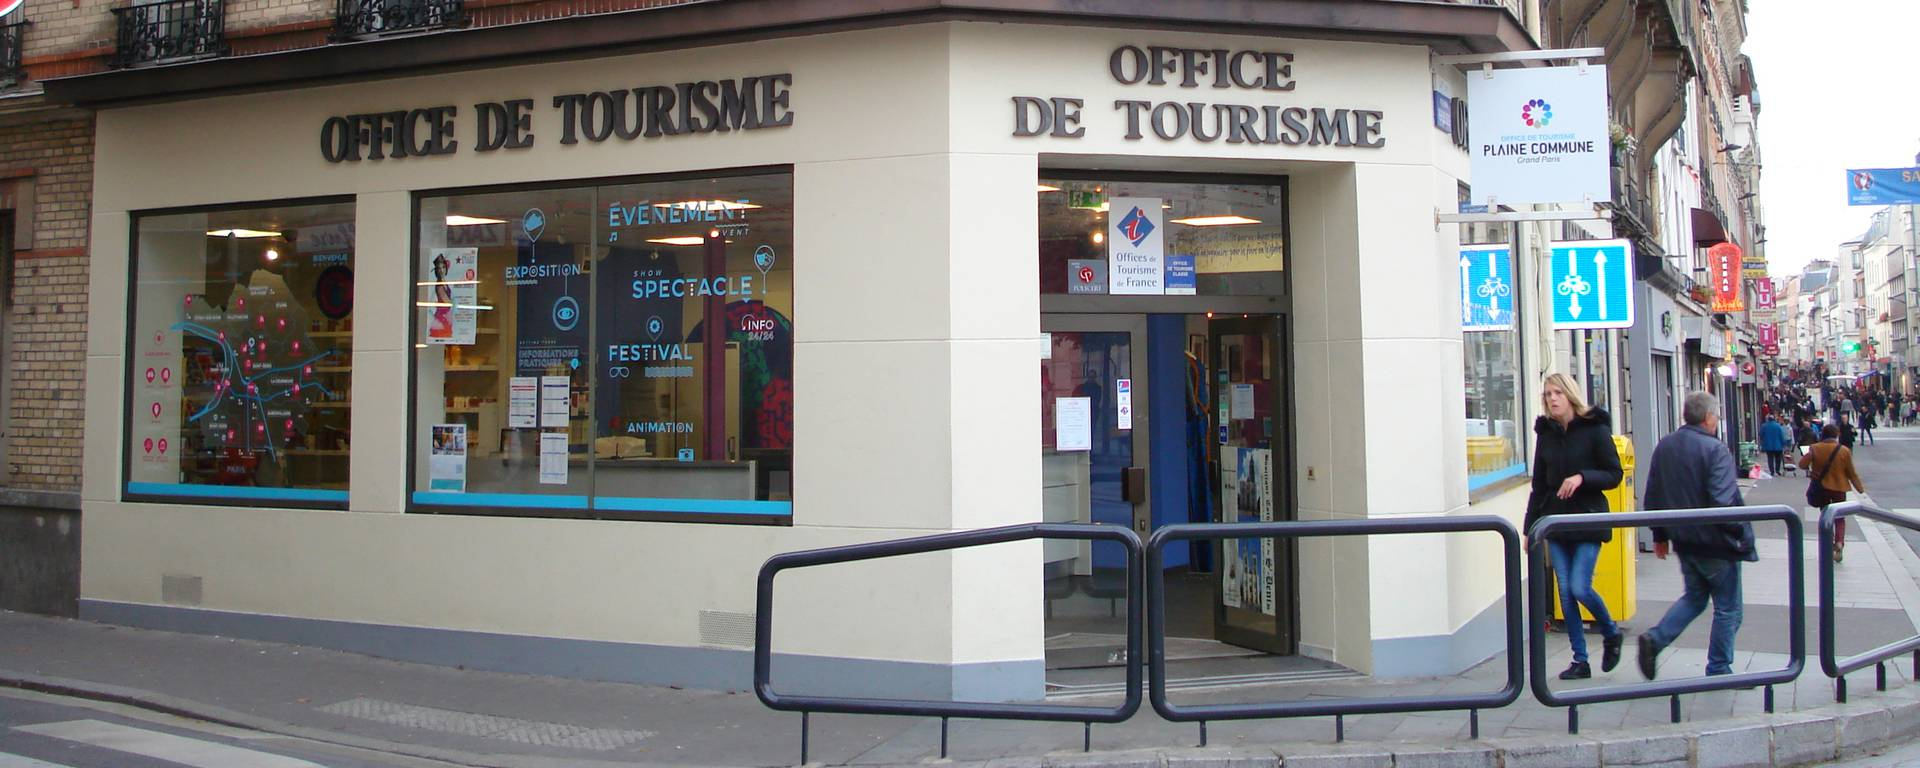 office-de-tourisme-saint-denis